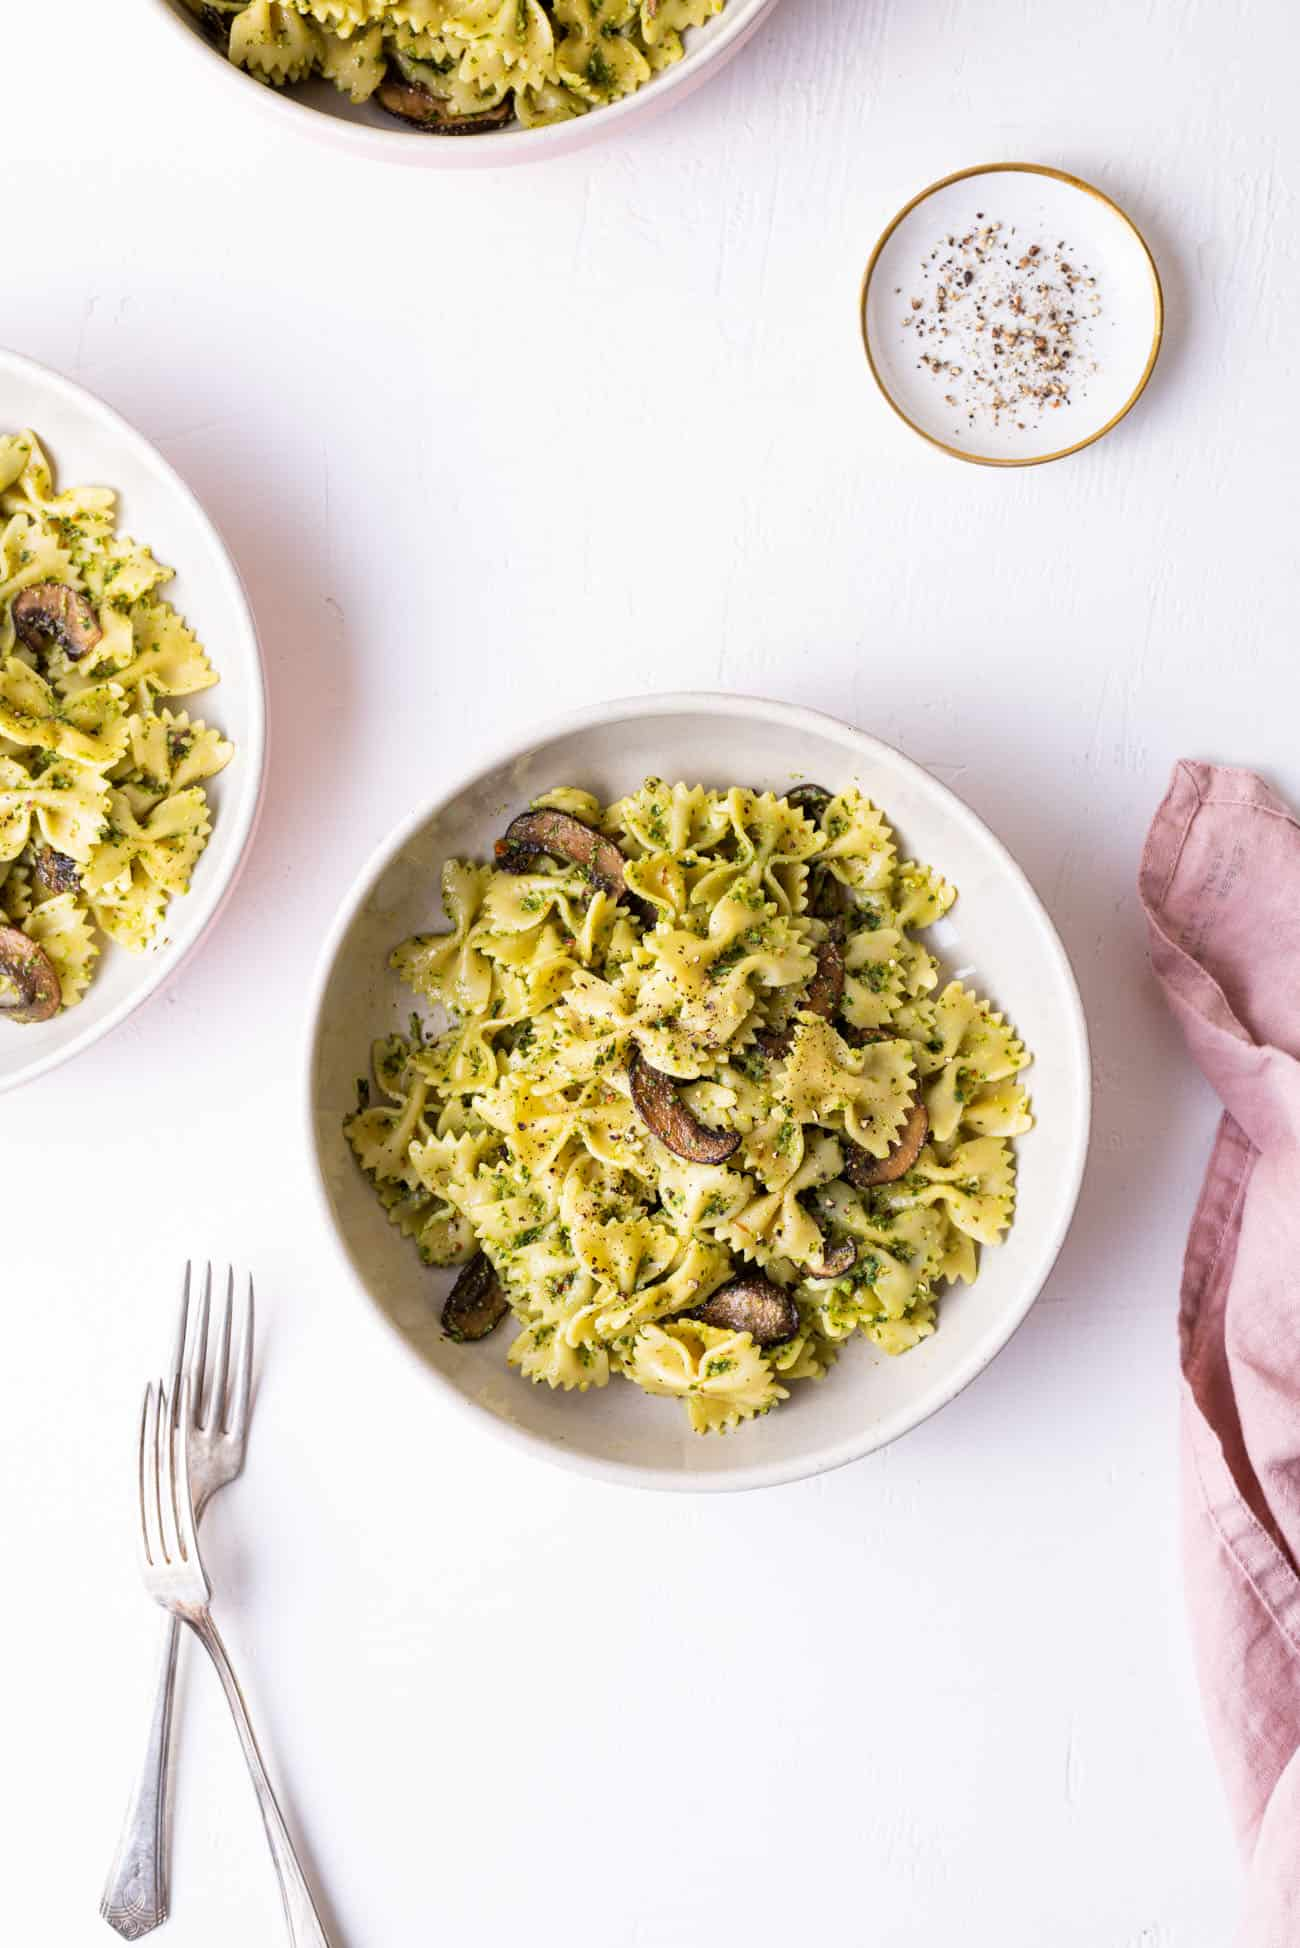 3 bowls with mushroom pesto pasta on a white table.